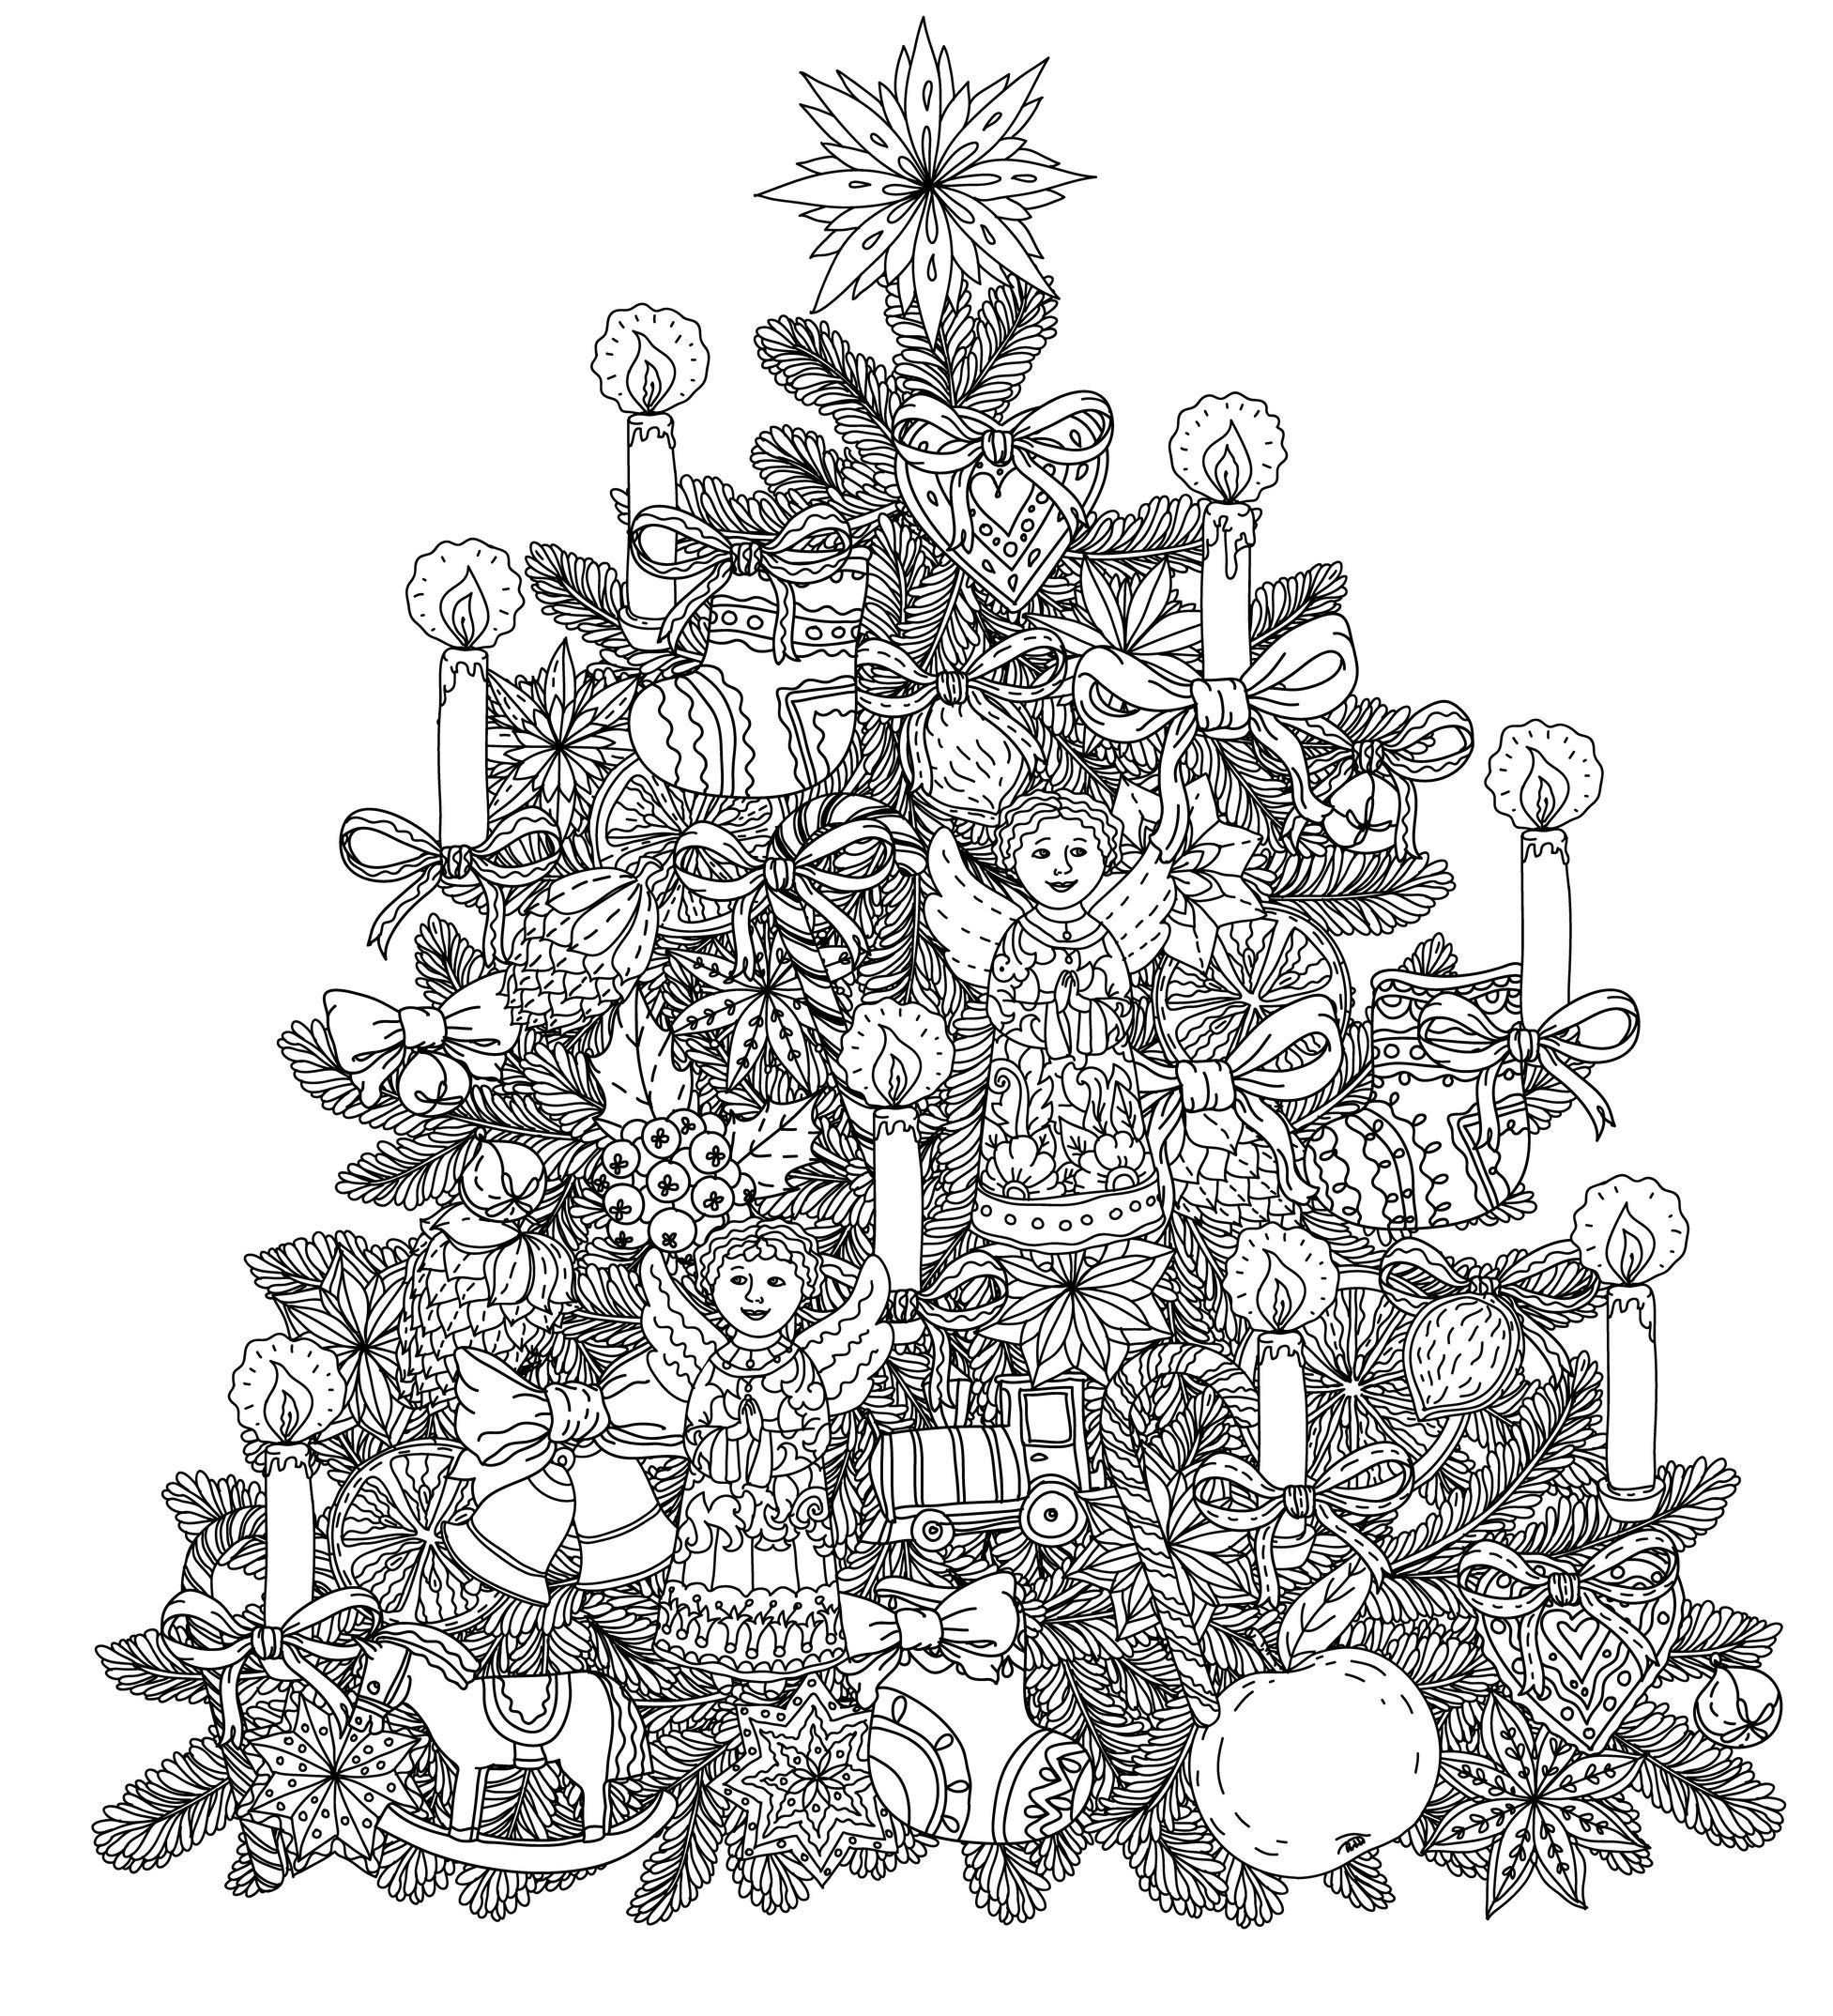 49525666 - christmas tree ornament with decorative items, black and white. the best for your design, textiles, posters, coloring bookA partir de la galerie : Noel